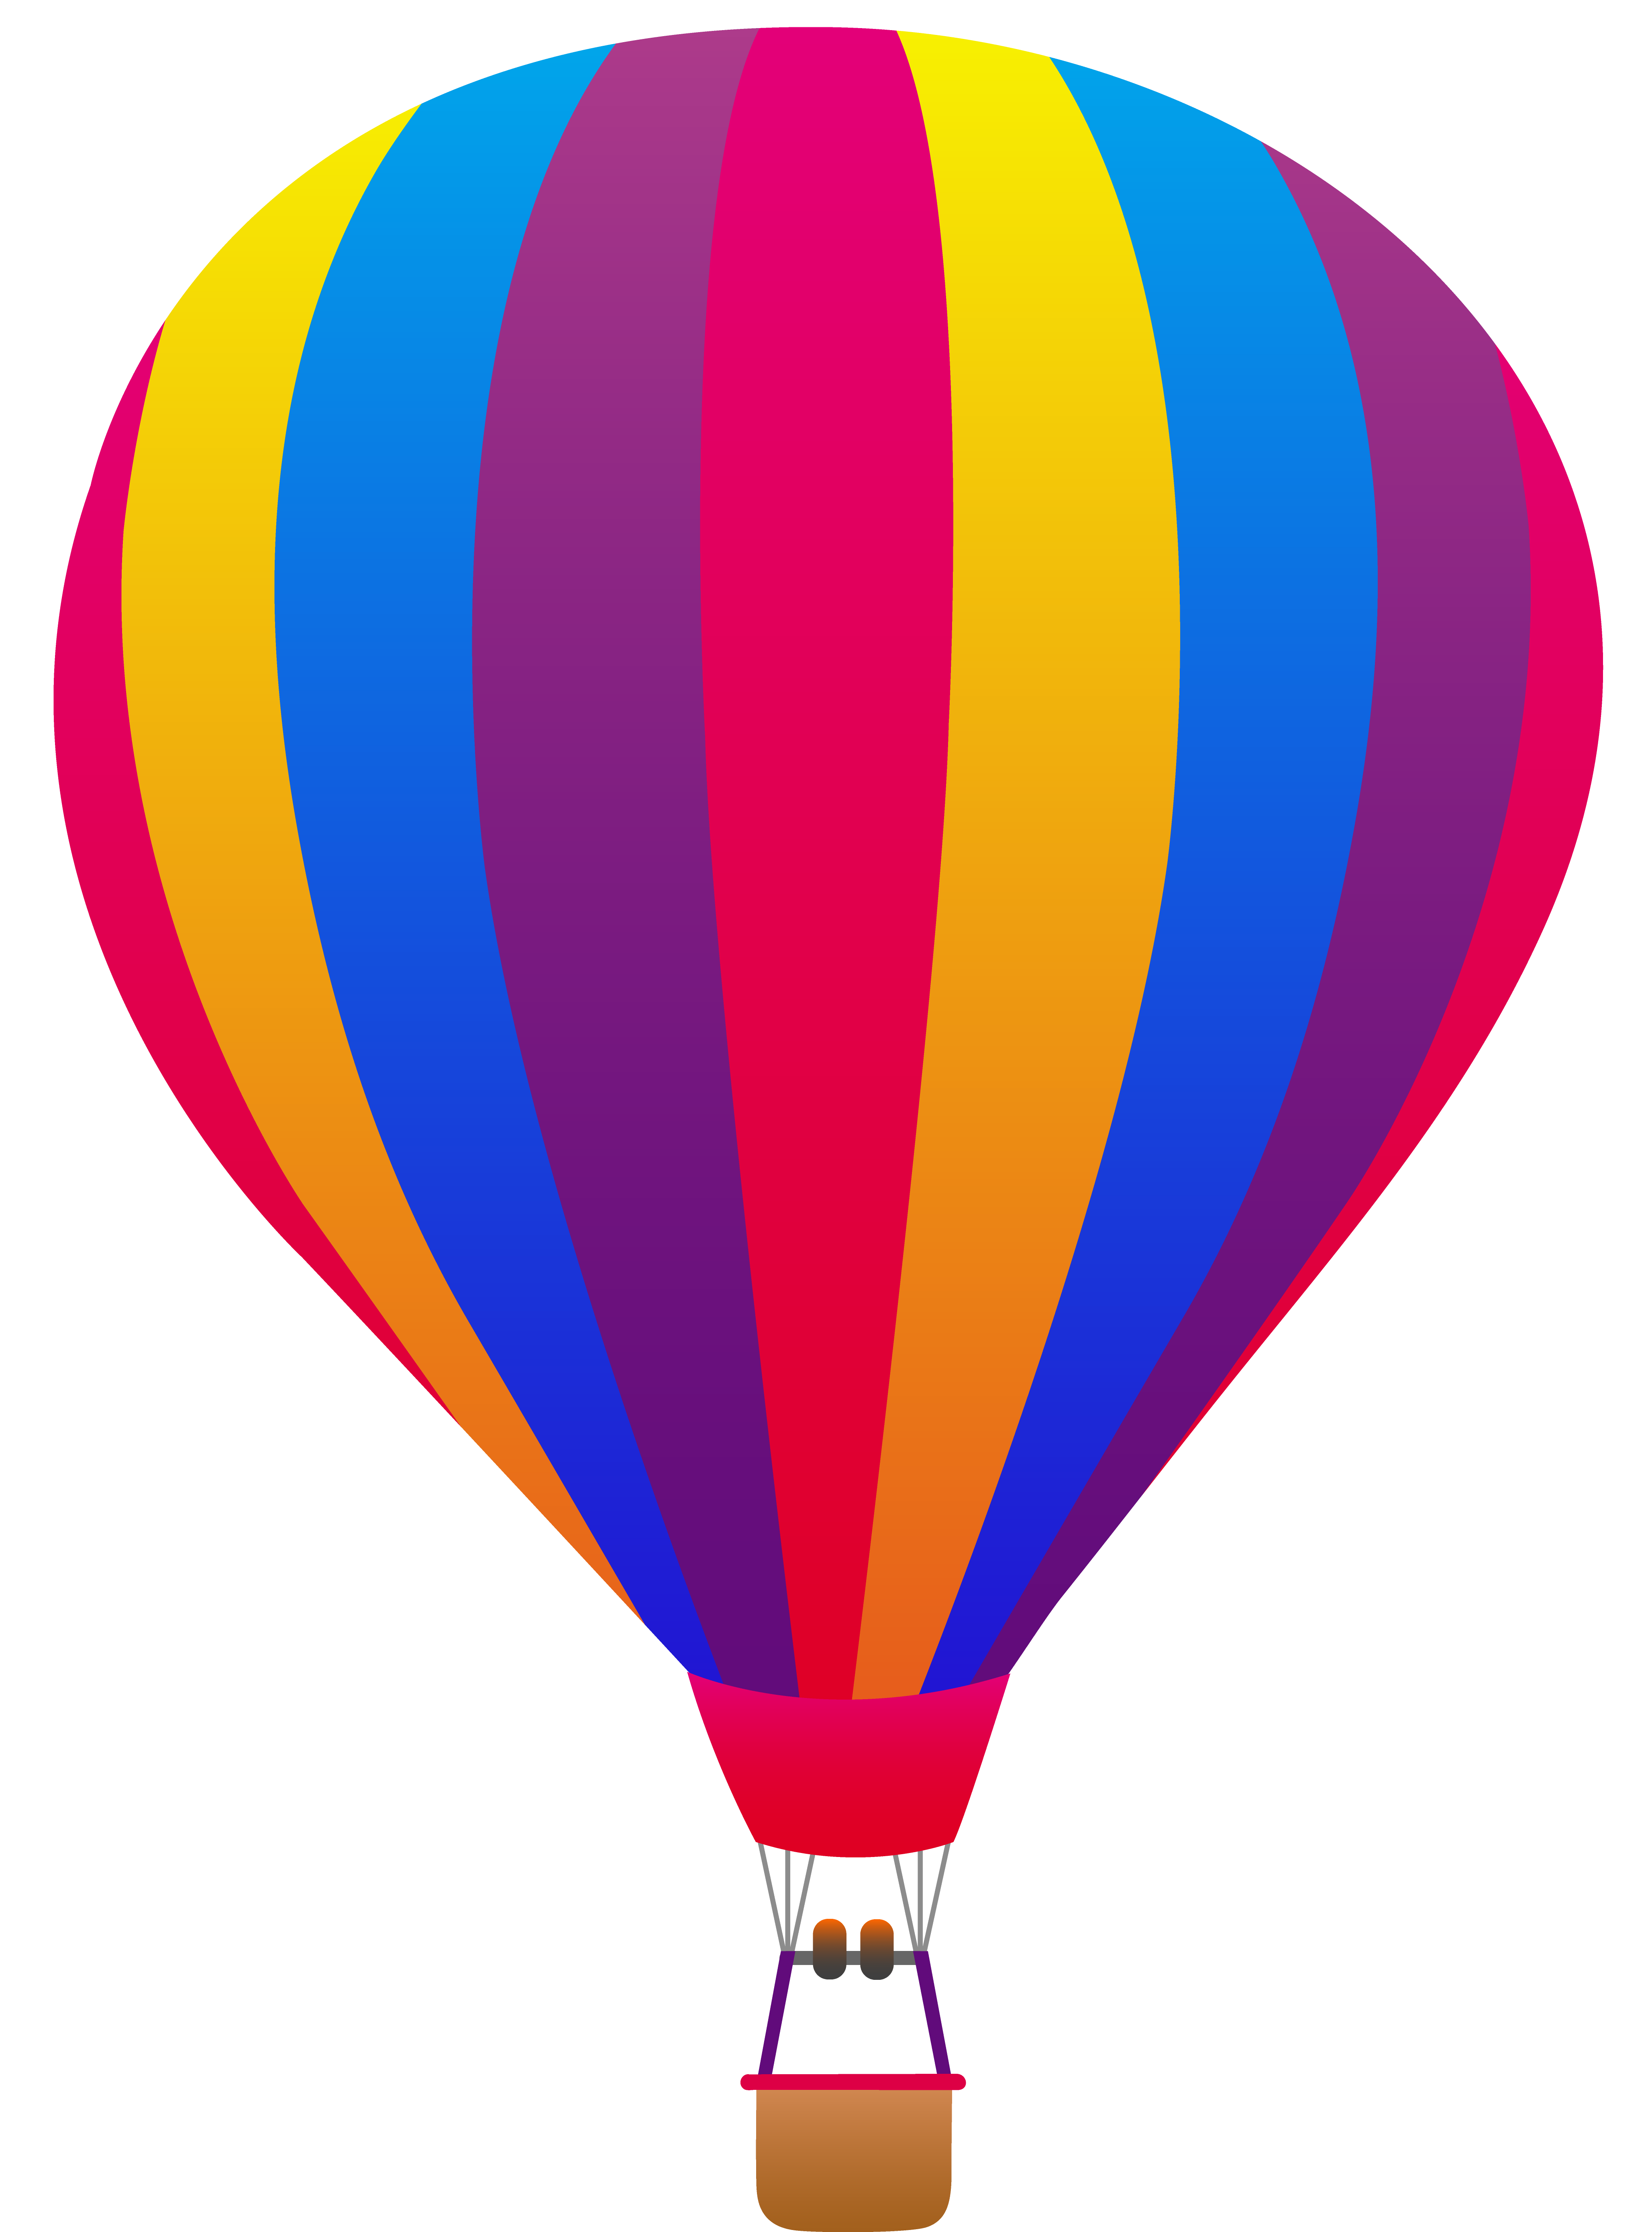 Air balloon clipart free banner free library Best Hot Air Balloon Clip Art #1294 - Clipartion.com banner free library